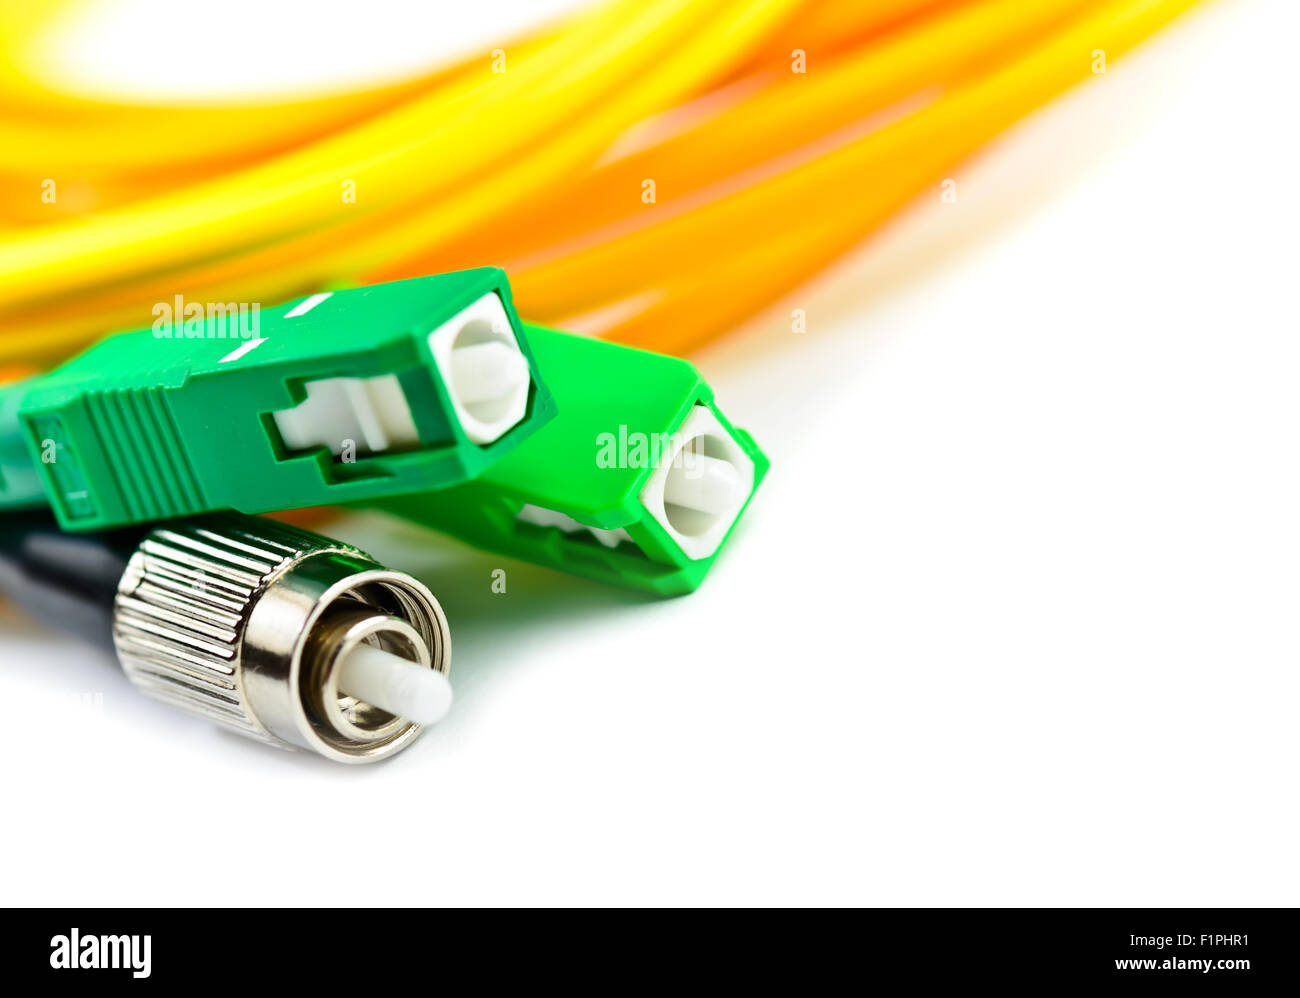 Fiber optic cable link plug connector isolated on white - Stock Image